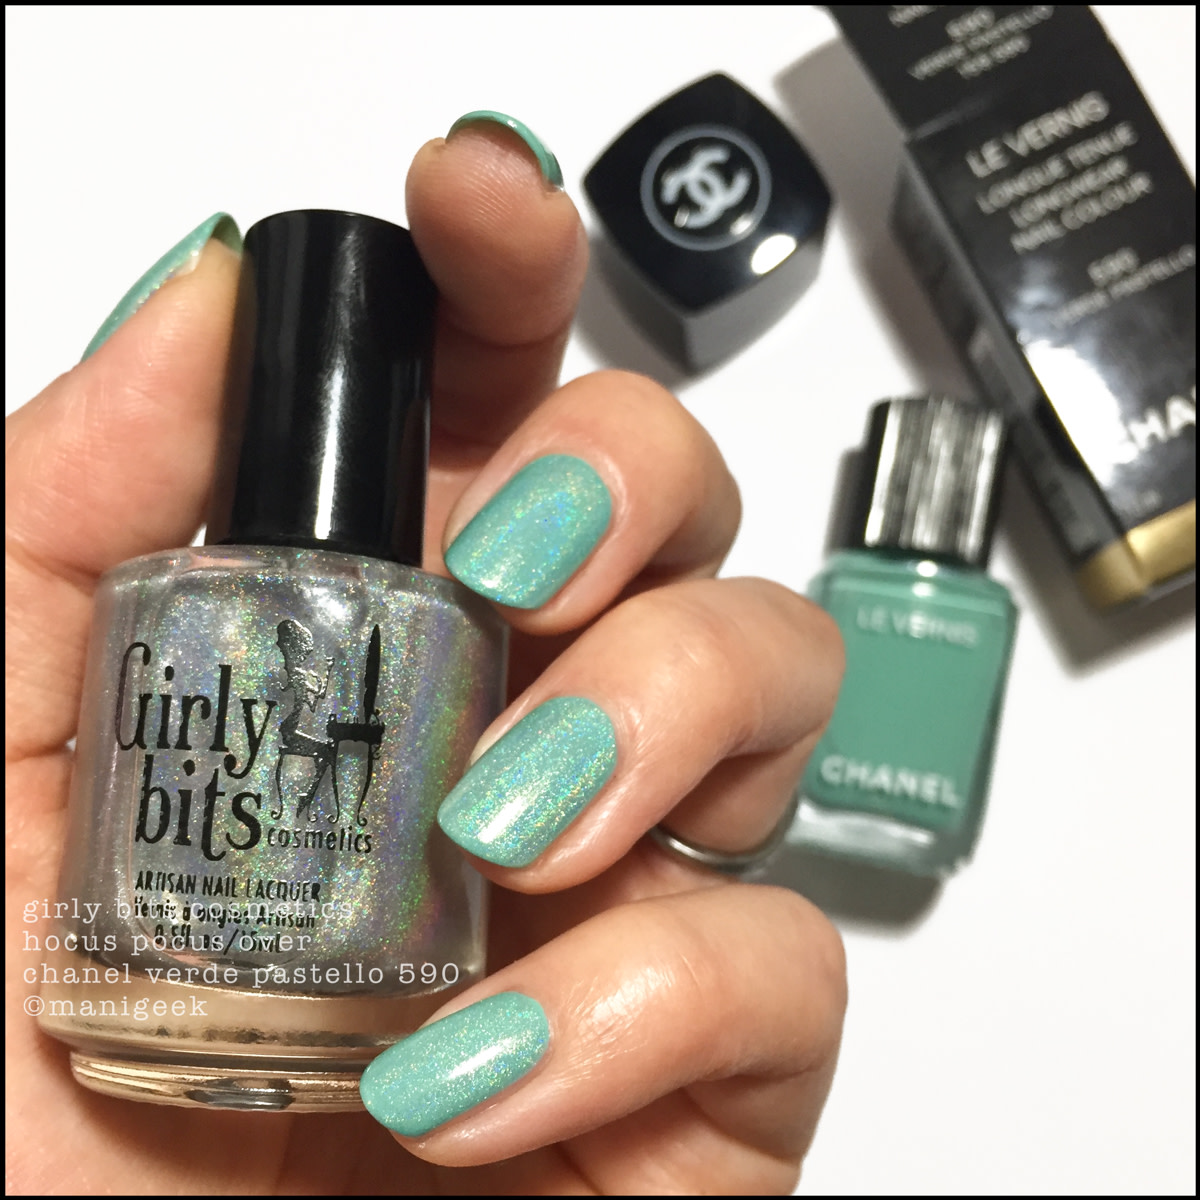 Girly Bits Hocus Pocus over Chanel Verde Pastello 590